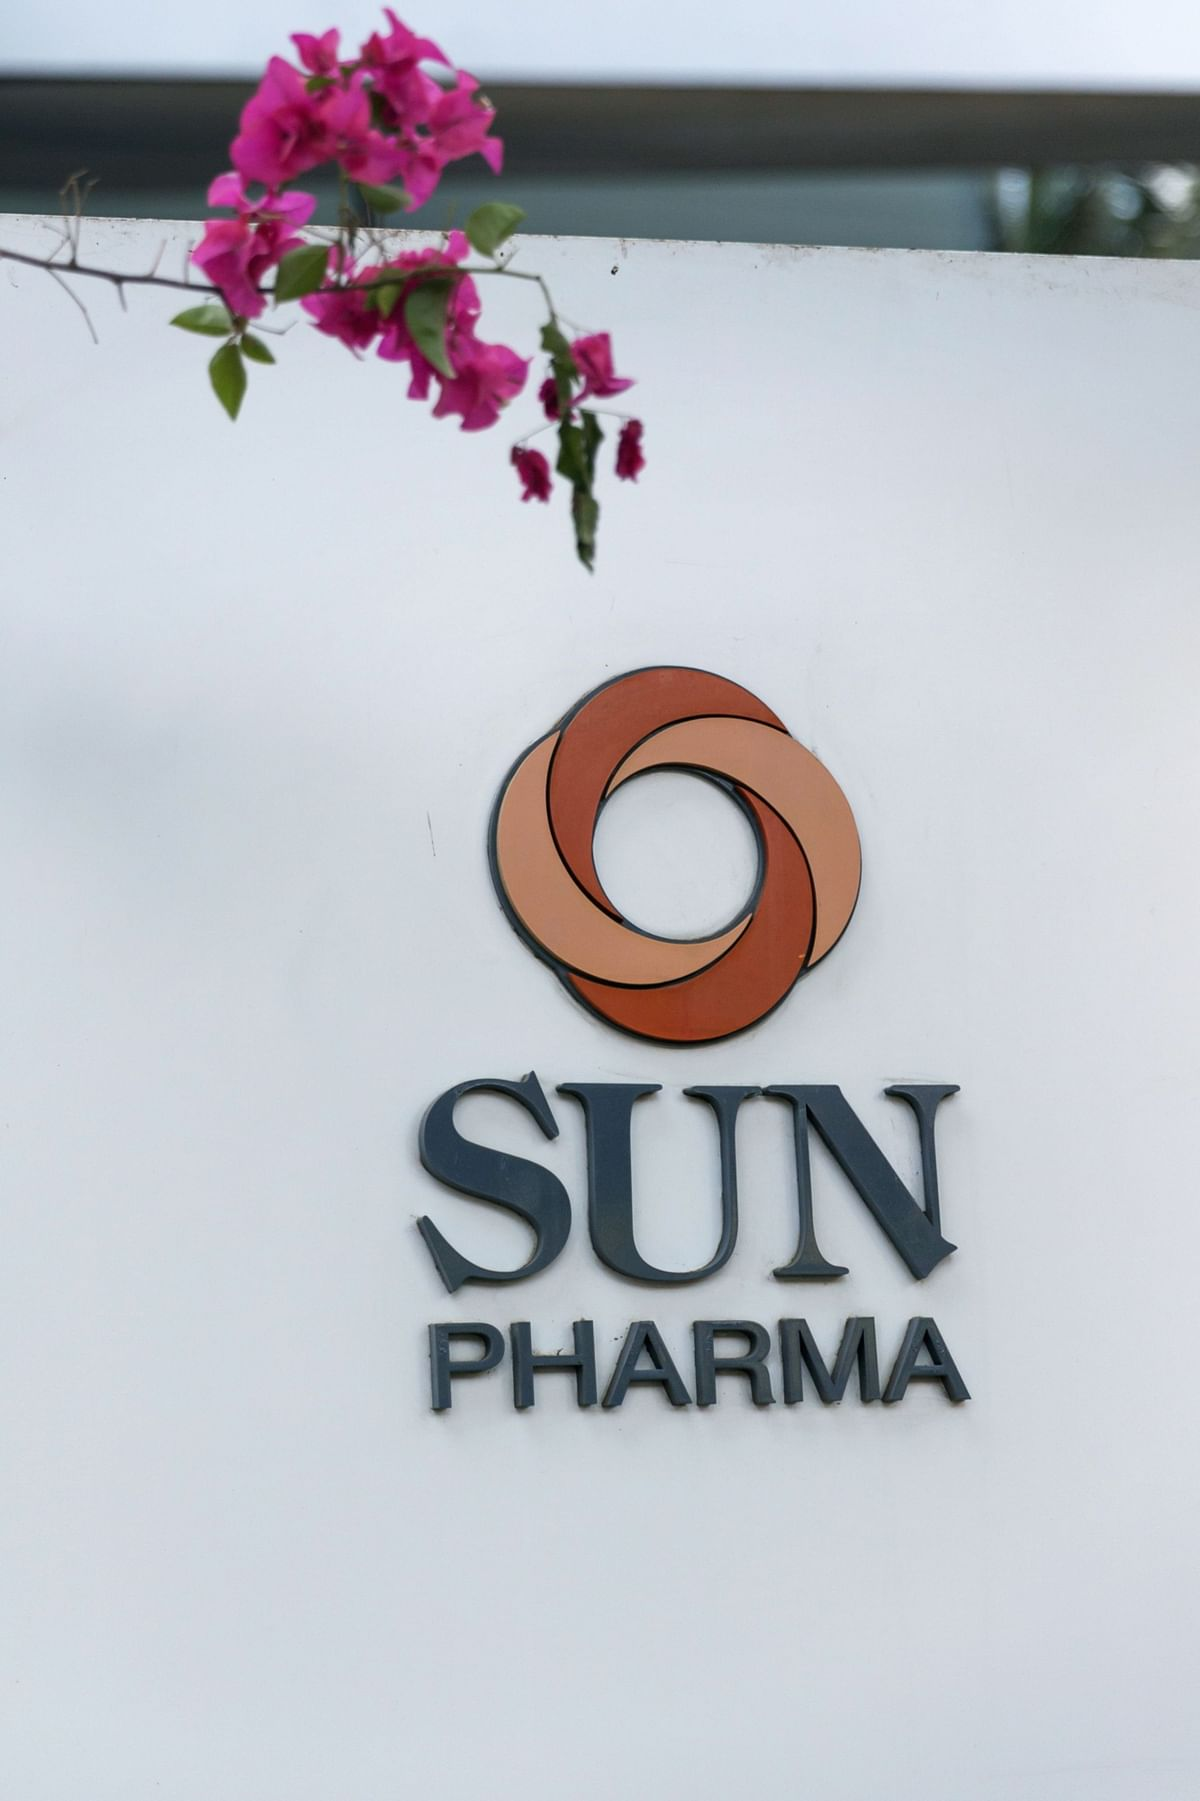 What Analysts Made Of Sun Pharma's Q4 Earnings